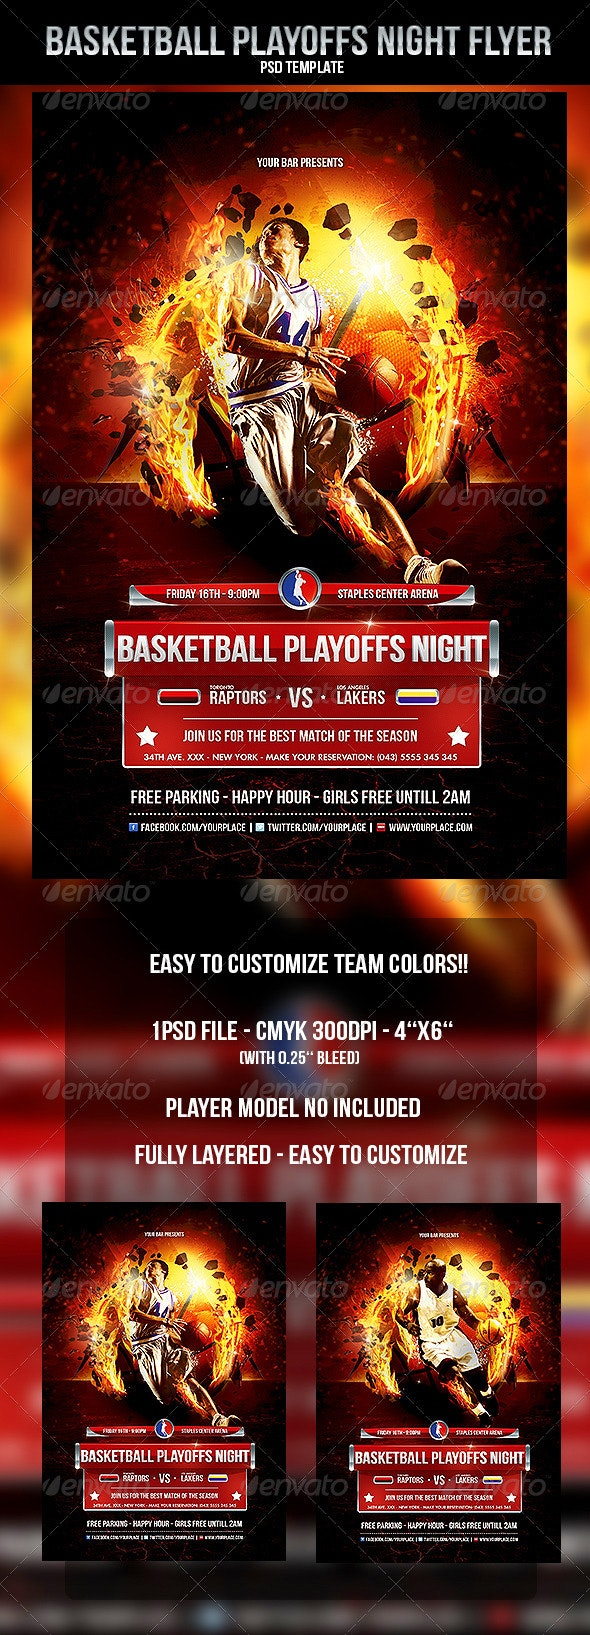 Basketball Playoffs Night Flyer Template - Sports Events